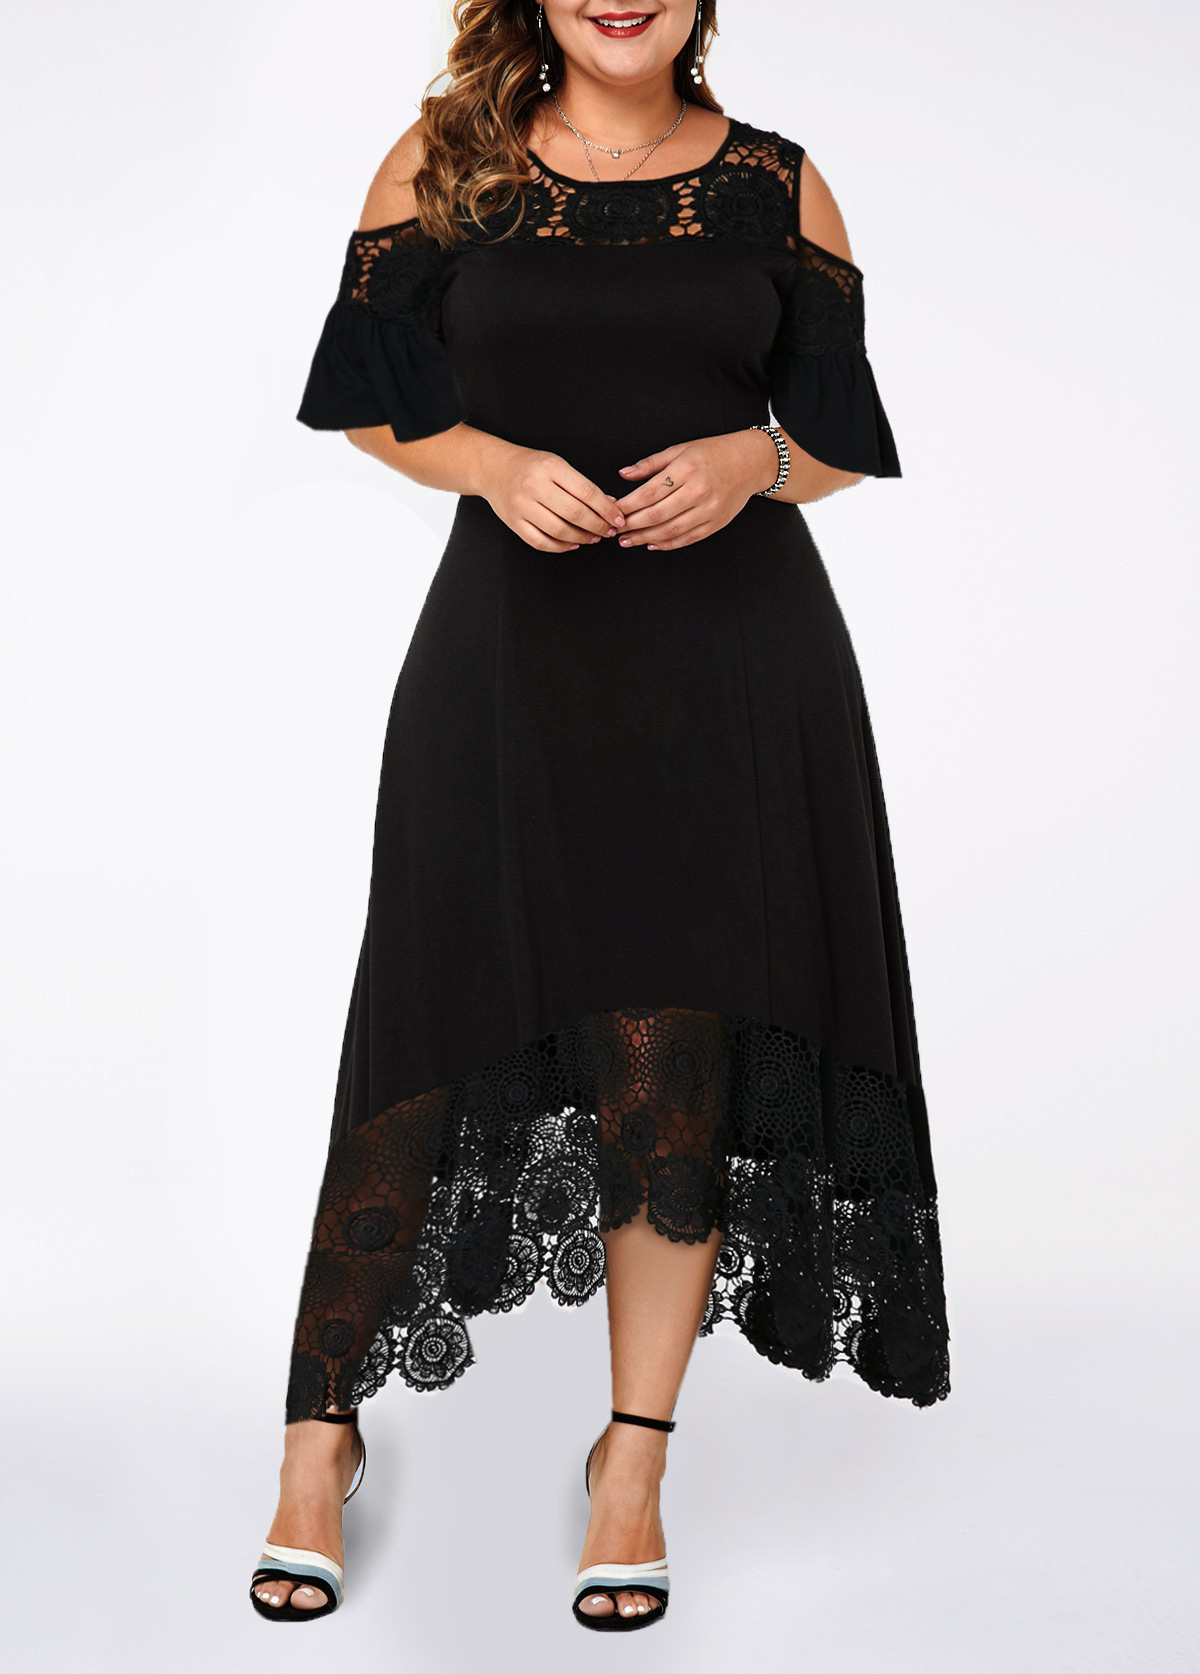 Cold Shoulder Lace Patchwork Plus Size Black Dress